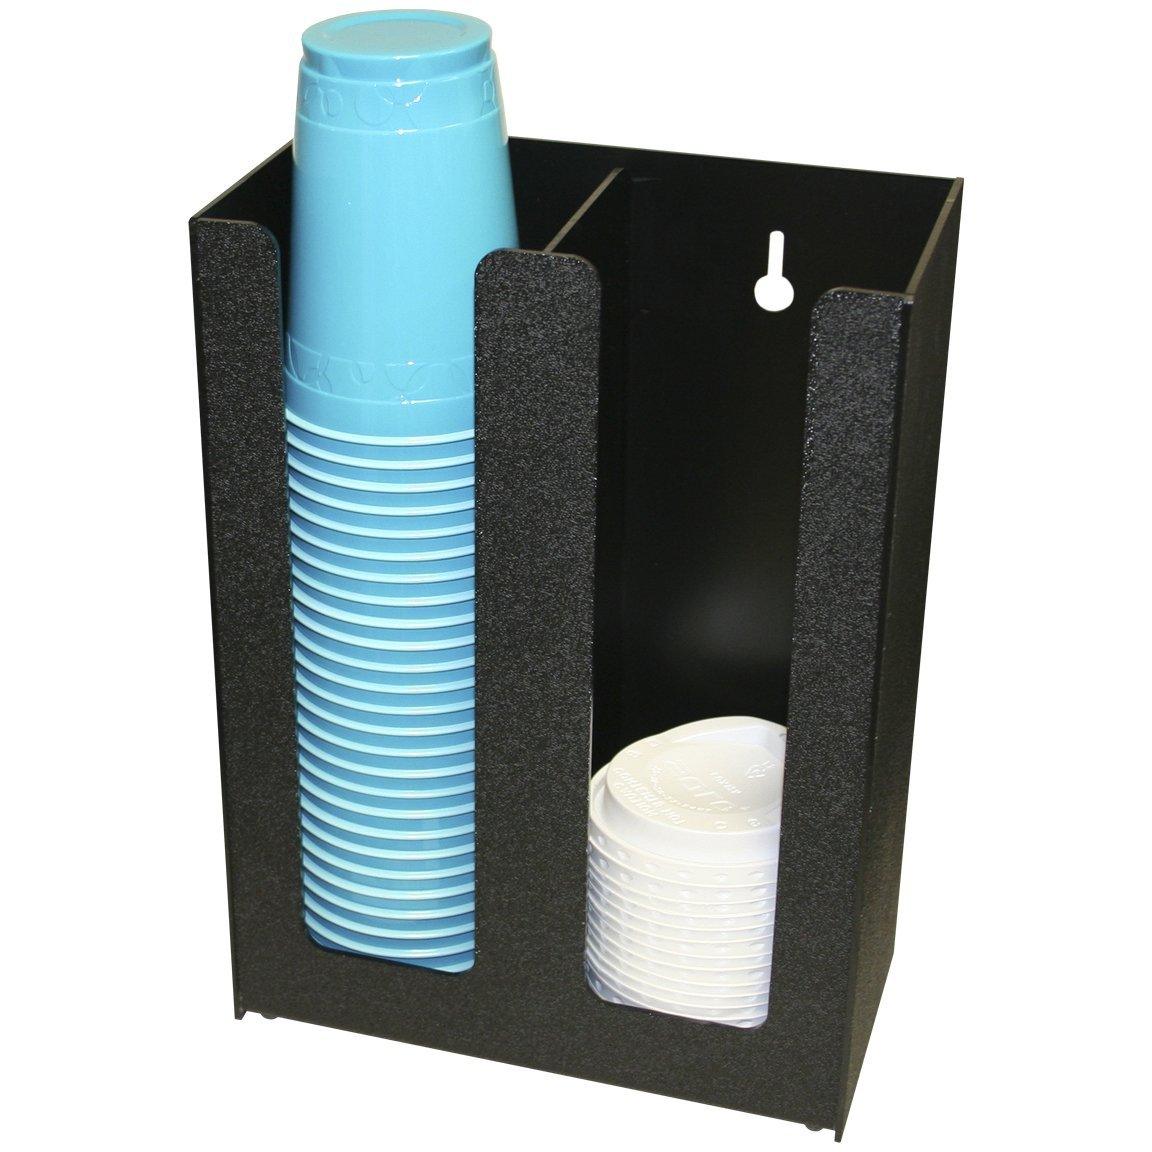 Coffee or Solo Cup and Lid Holder Dispenser and Organizer, Countertop, PC-200BLK